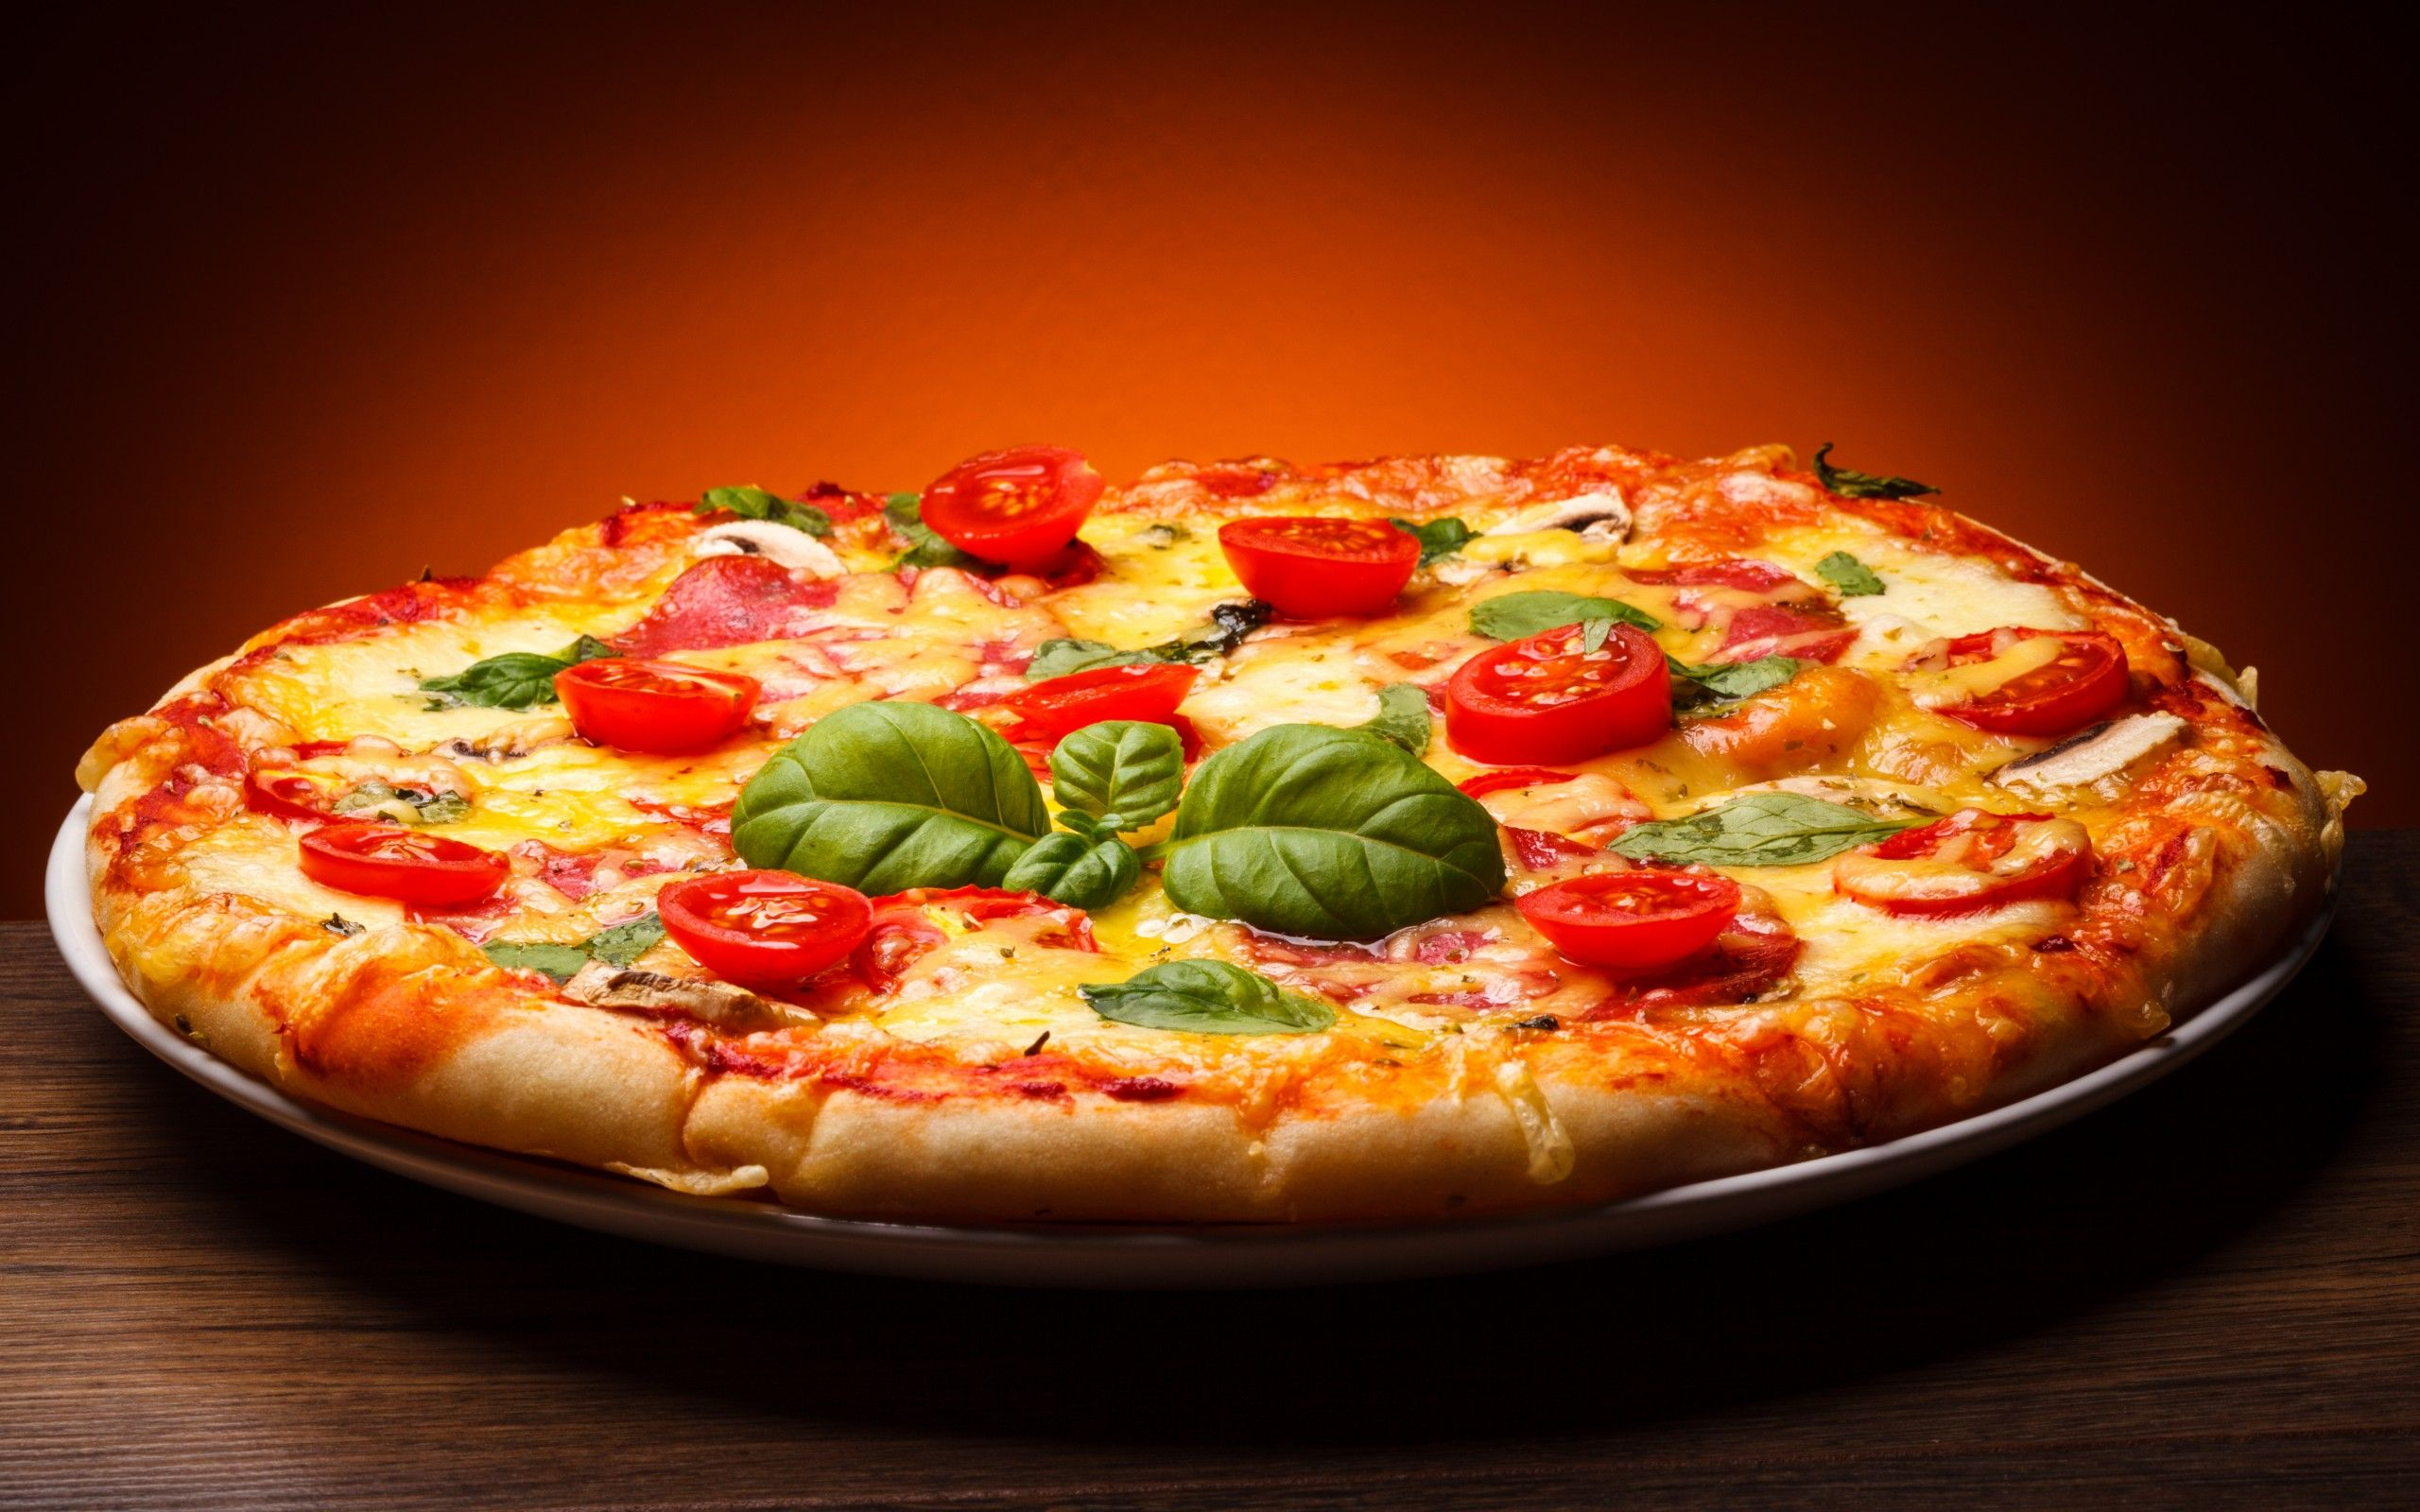 Download Pizza Wallpapers High Quality For Widescreen Wallpaper Subwallpaper In 2020 Delicious Pizza Food Good Pizza